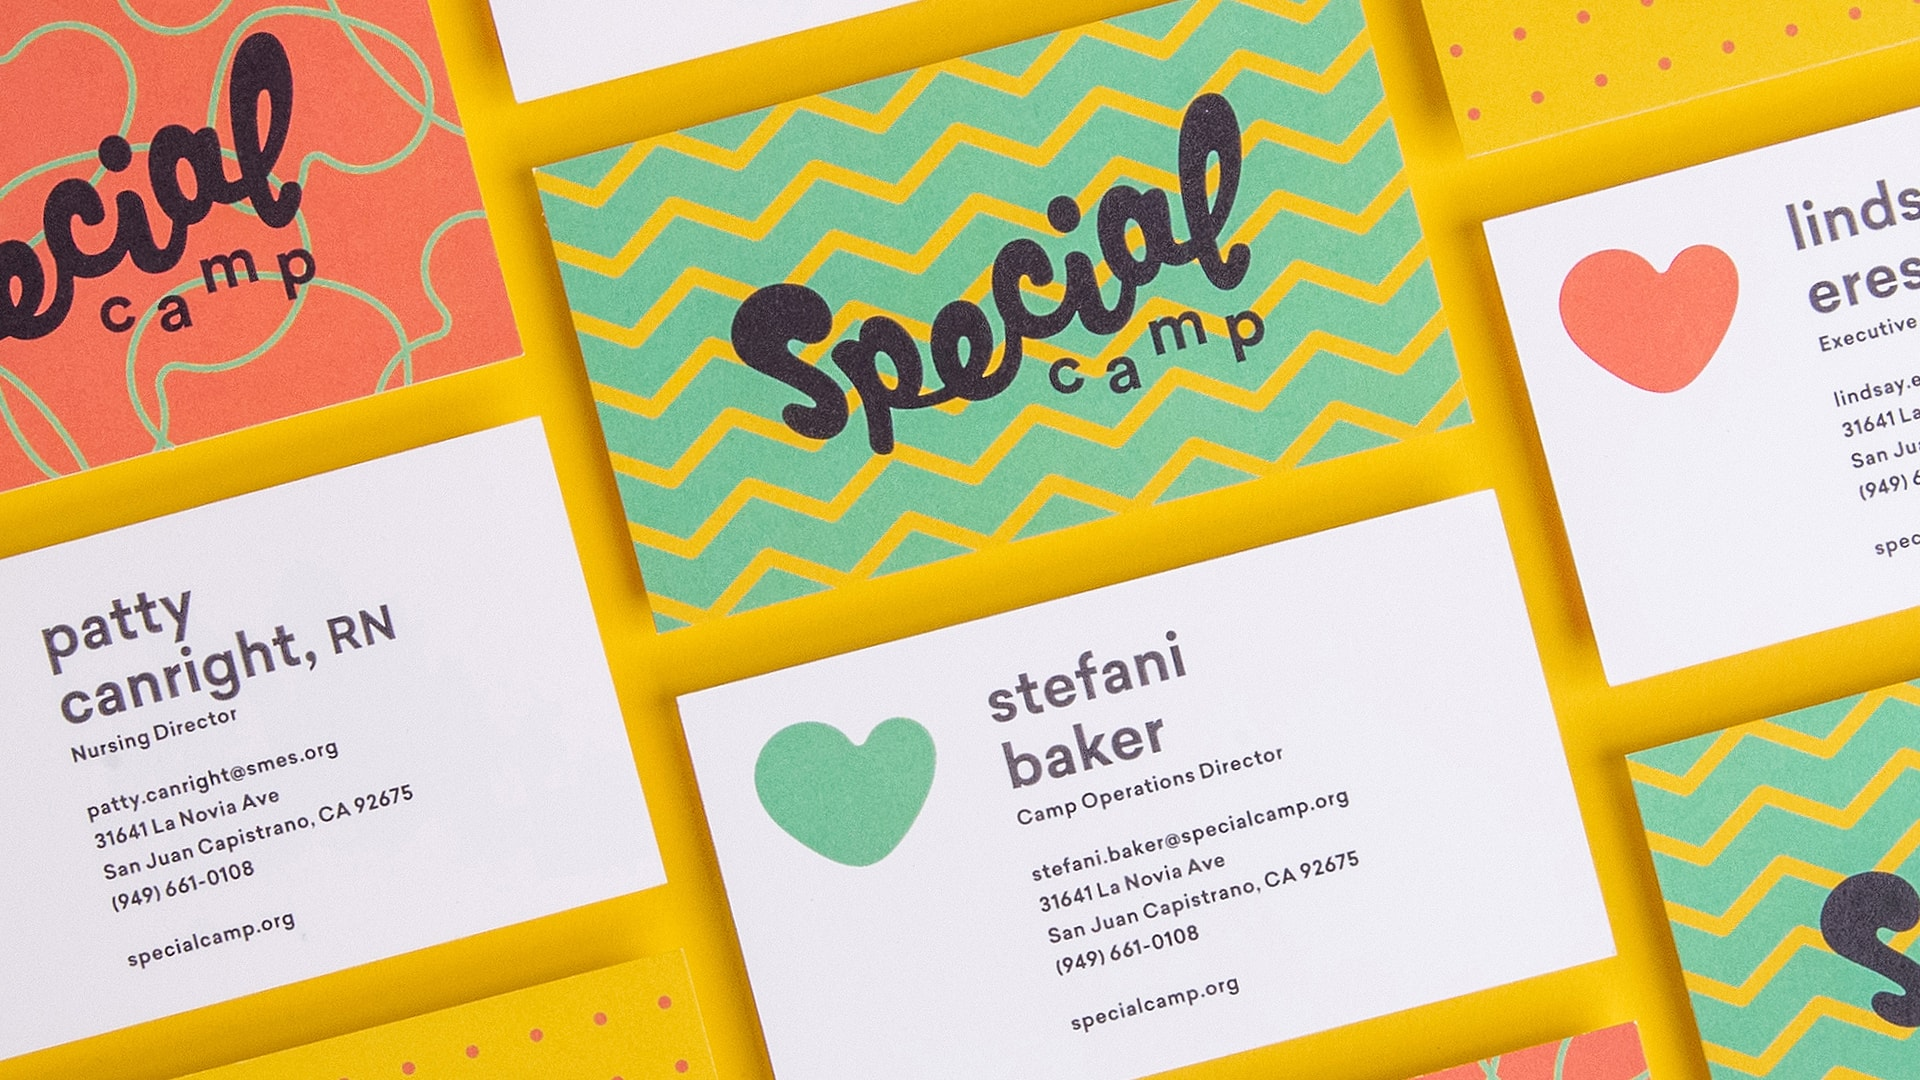 Special camp releases new rebrand